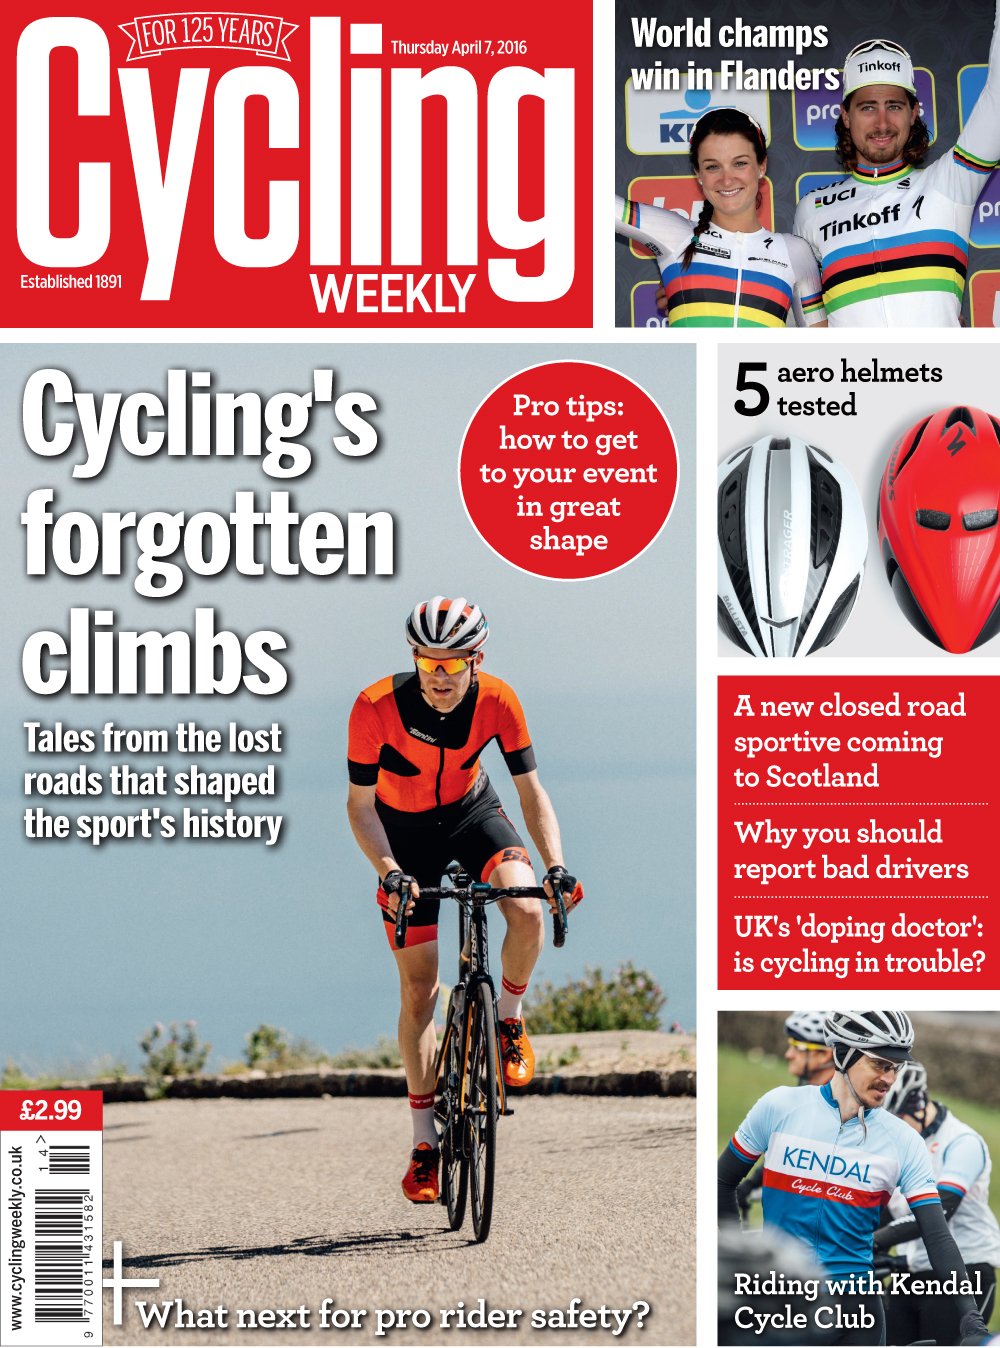 Cycling Weekly magazine April 7 2016 issue